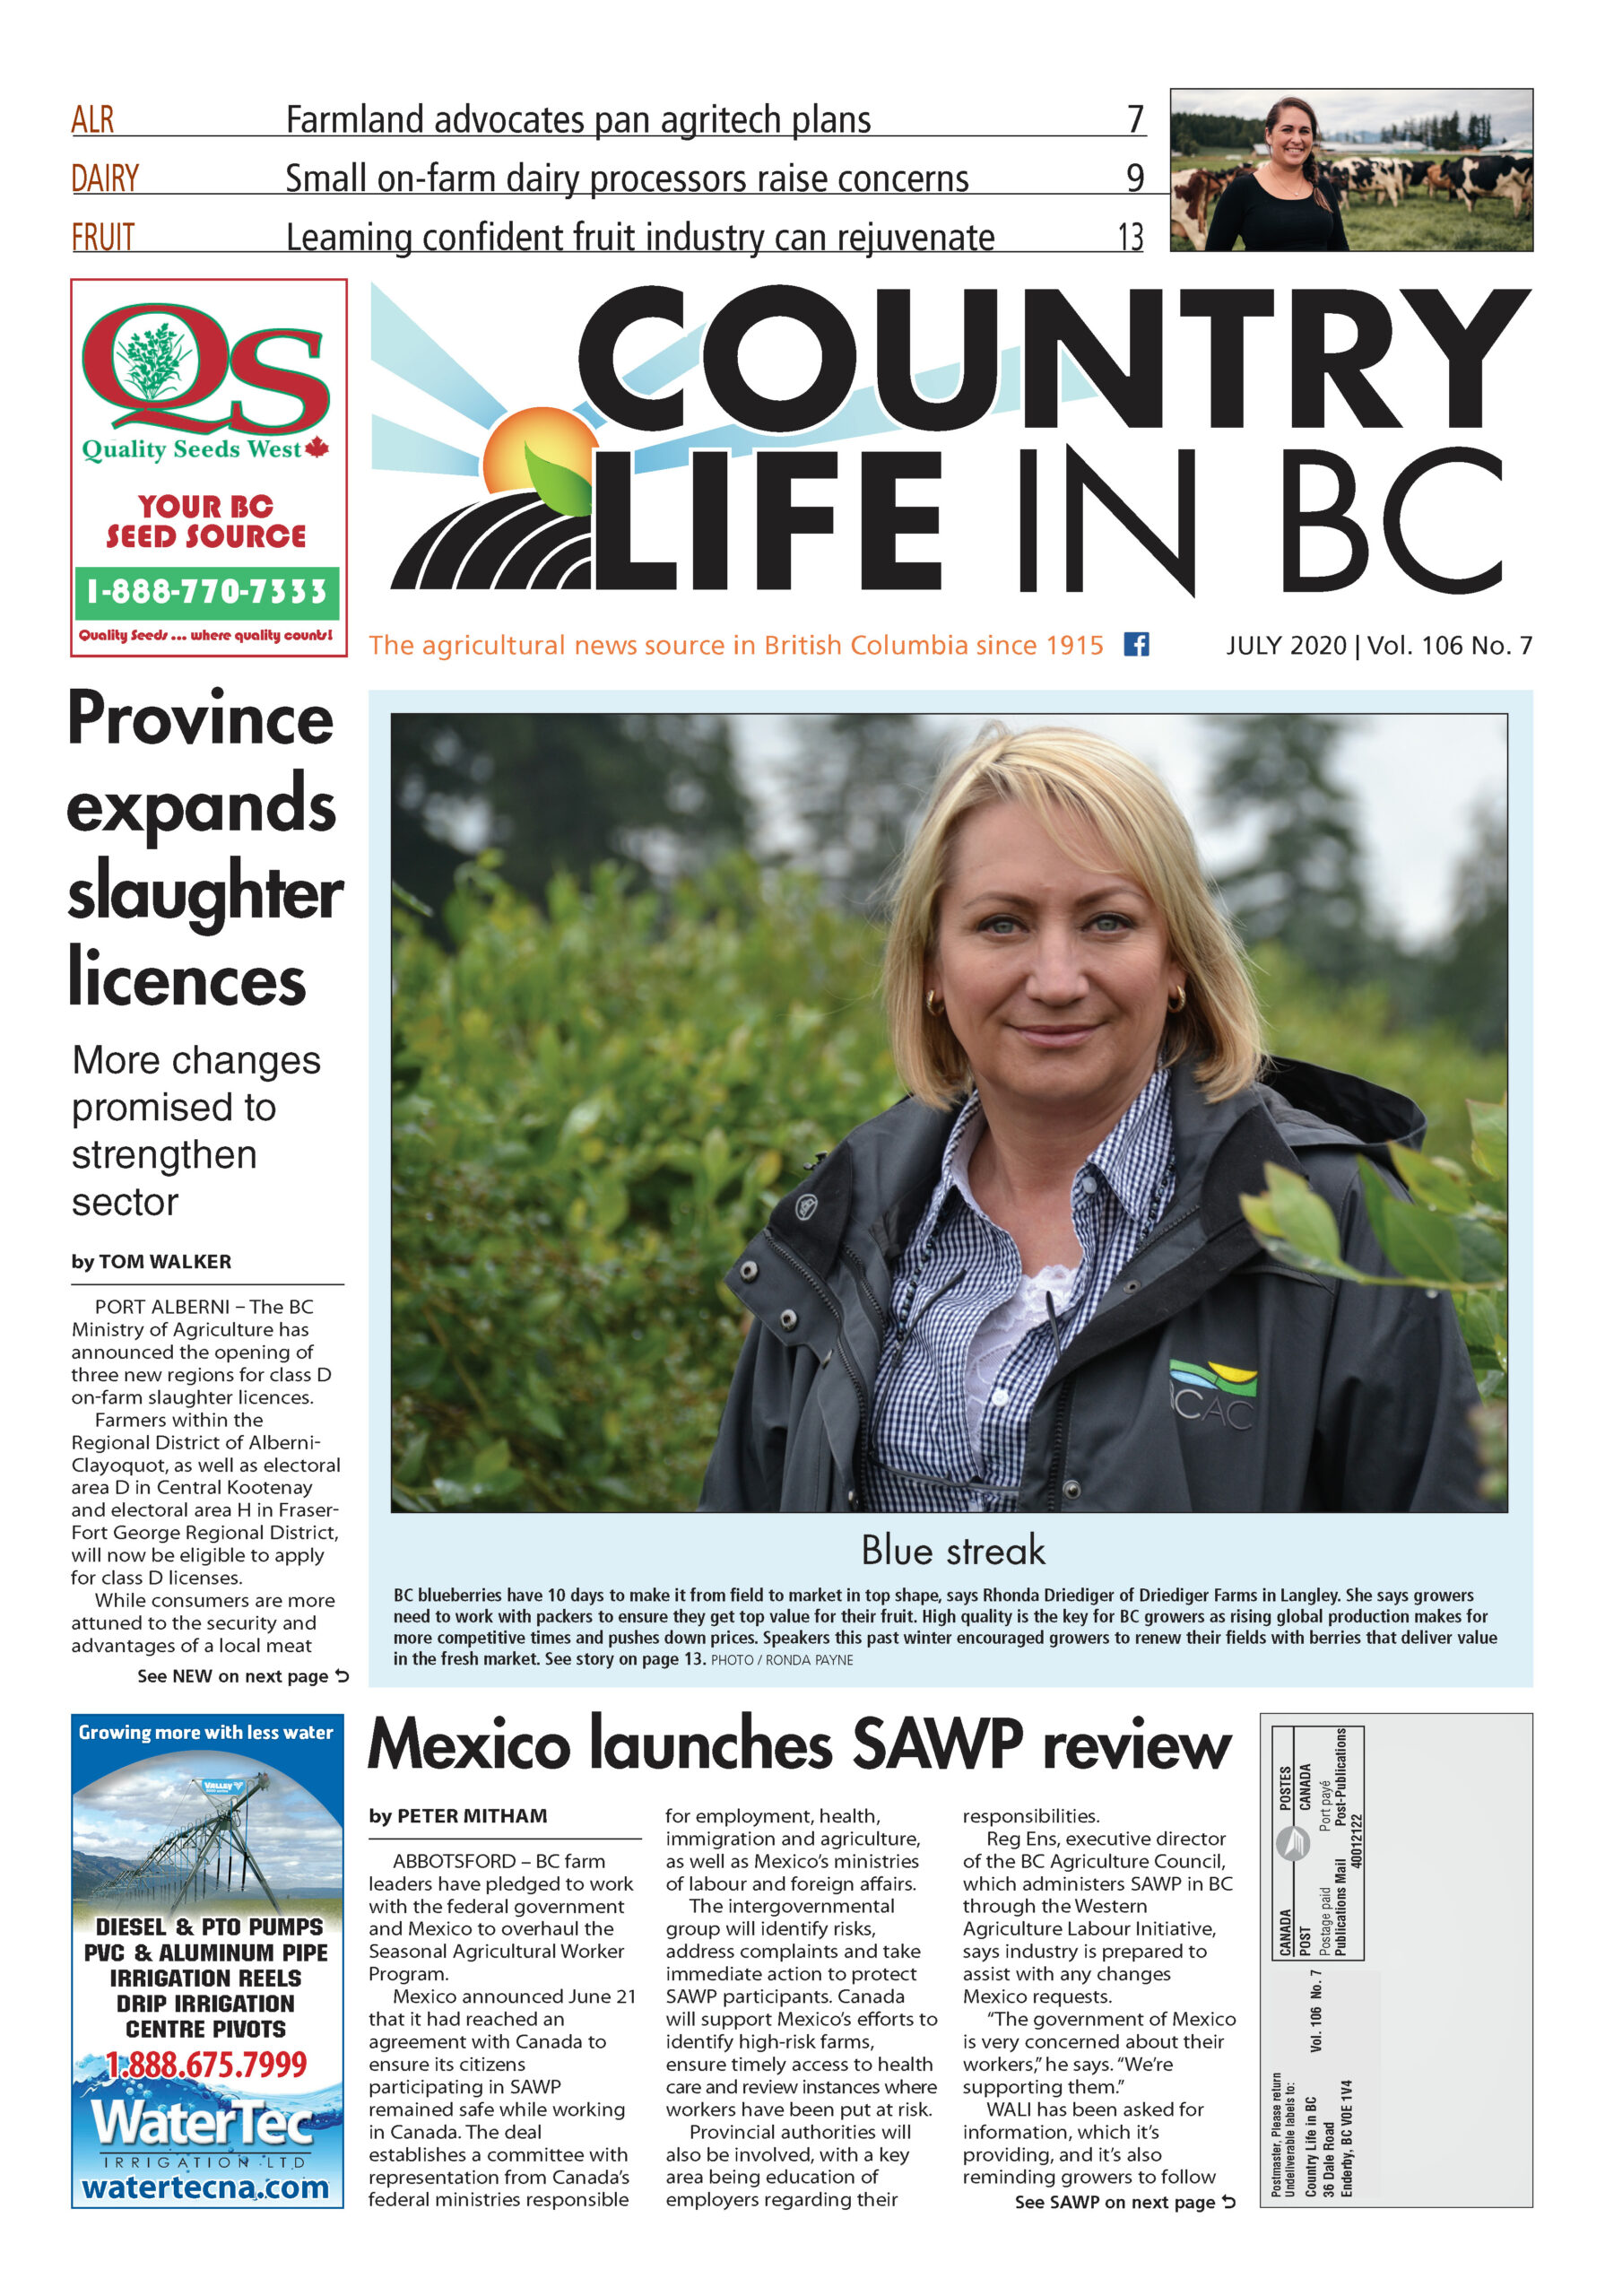 Country Life in BC - July 2020 cover p 1